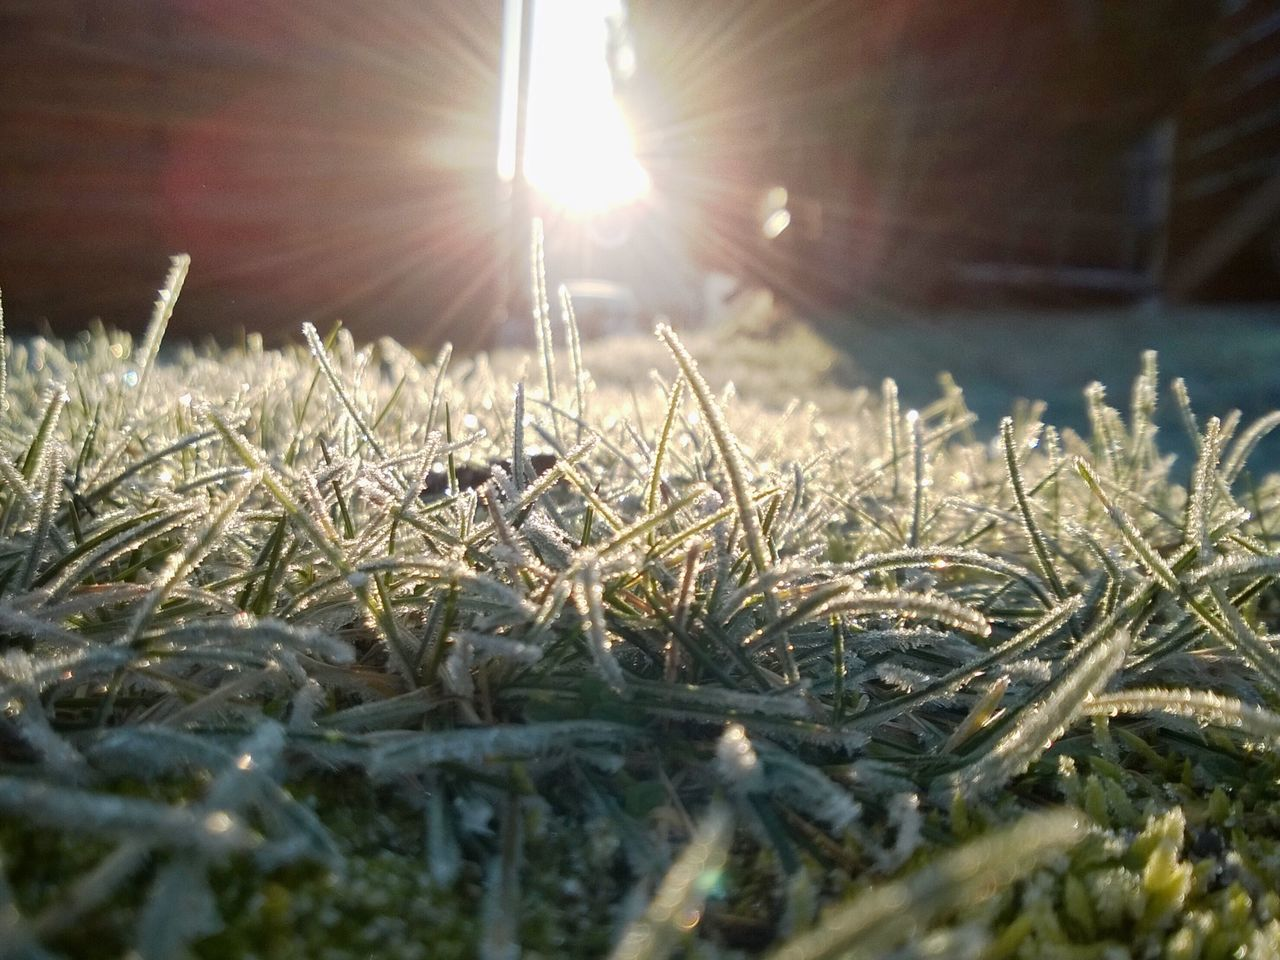 Grass Green Frost Frosty Frosty Morning Taking Photos No People Sun Sunrise Sunlight 2016 Lumia920 Windows 10 Windows 10 Mobile Postprocessing Enlight Enlight App Outdoors Sunset #sun #clouds #skylovers #sky #nature #beautifulinnature #naturalbeauty #photography #landscape Nature Nature Photography Frosty Mornings Frosty Frozen